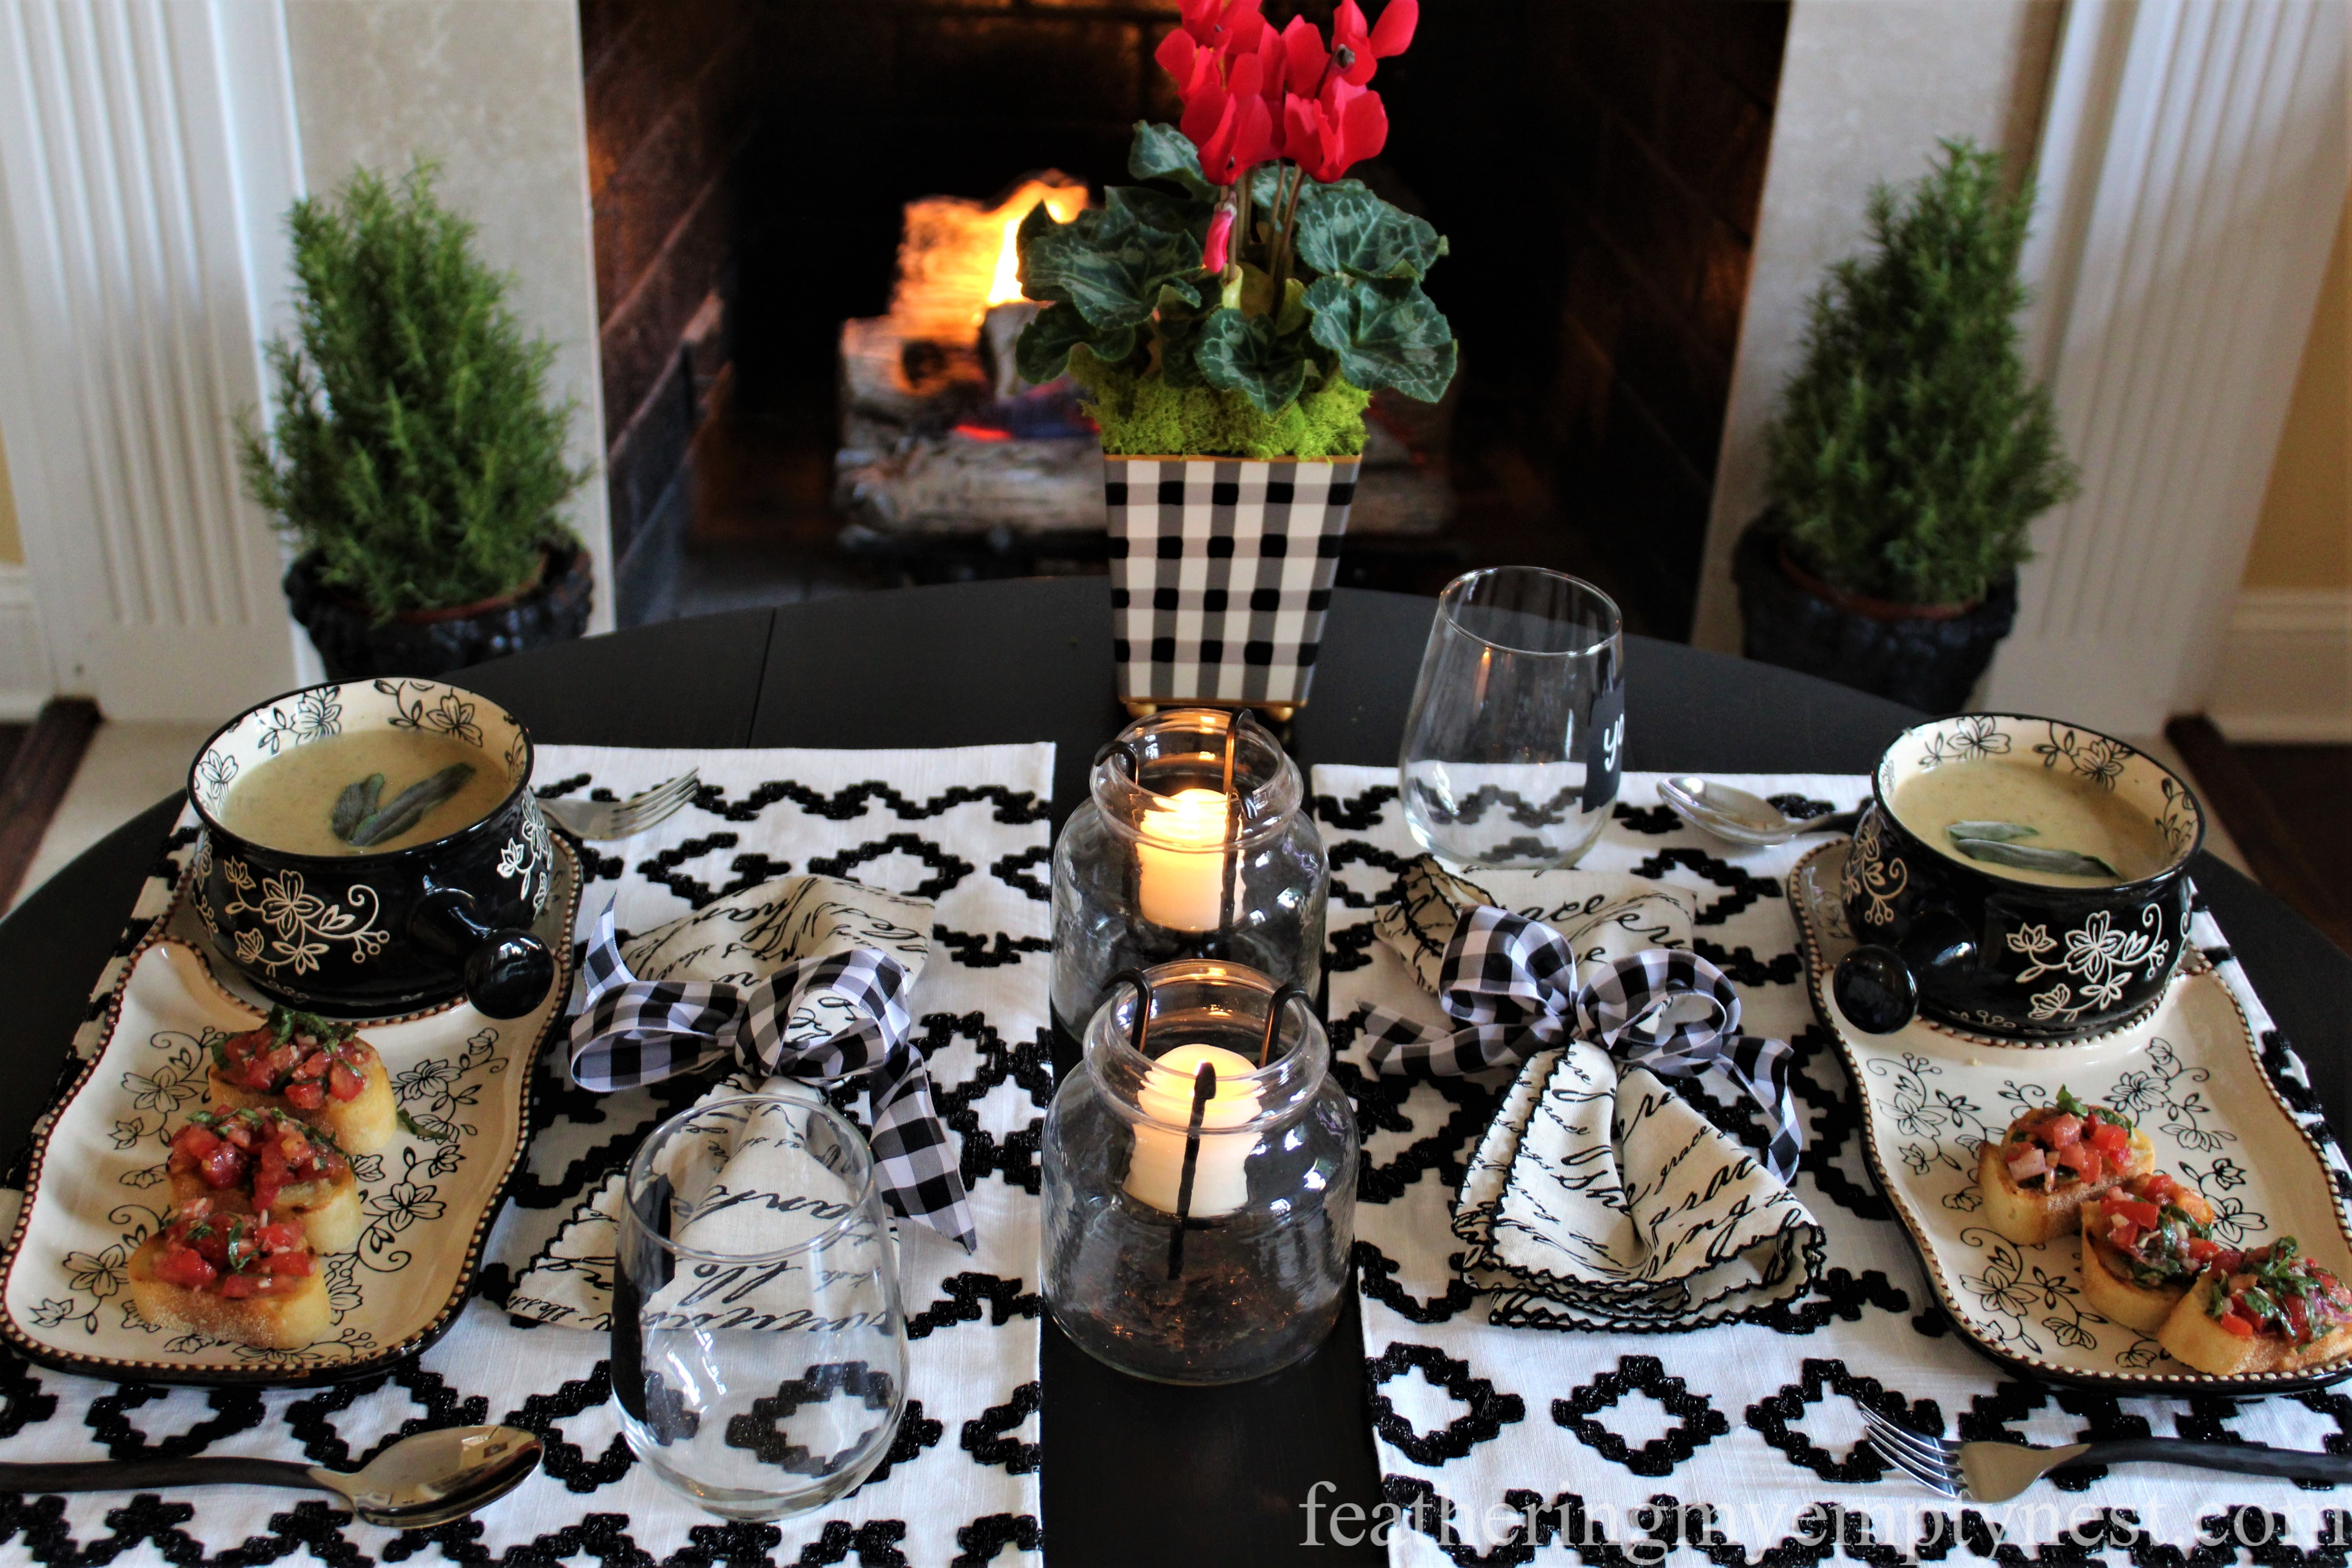 Beautifully set black and white fireside table is the perfect setting for a winter's meal of White Bean Soup and Bruschetta